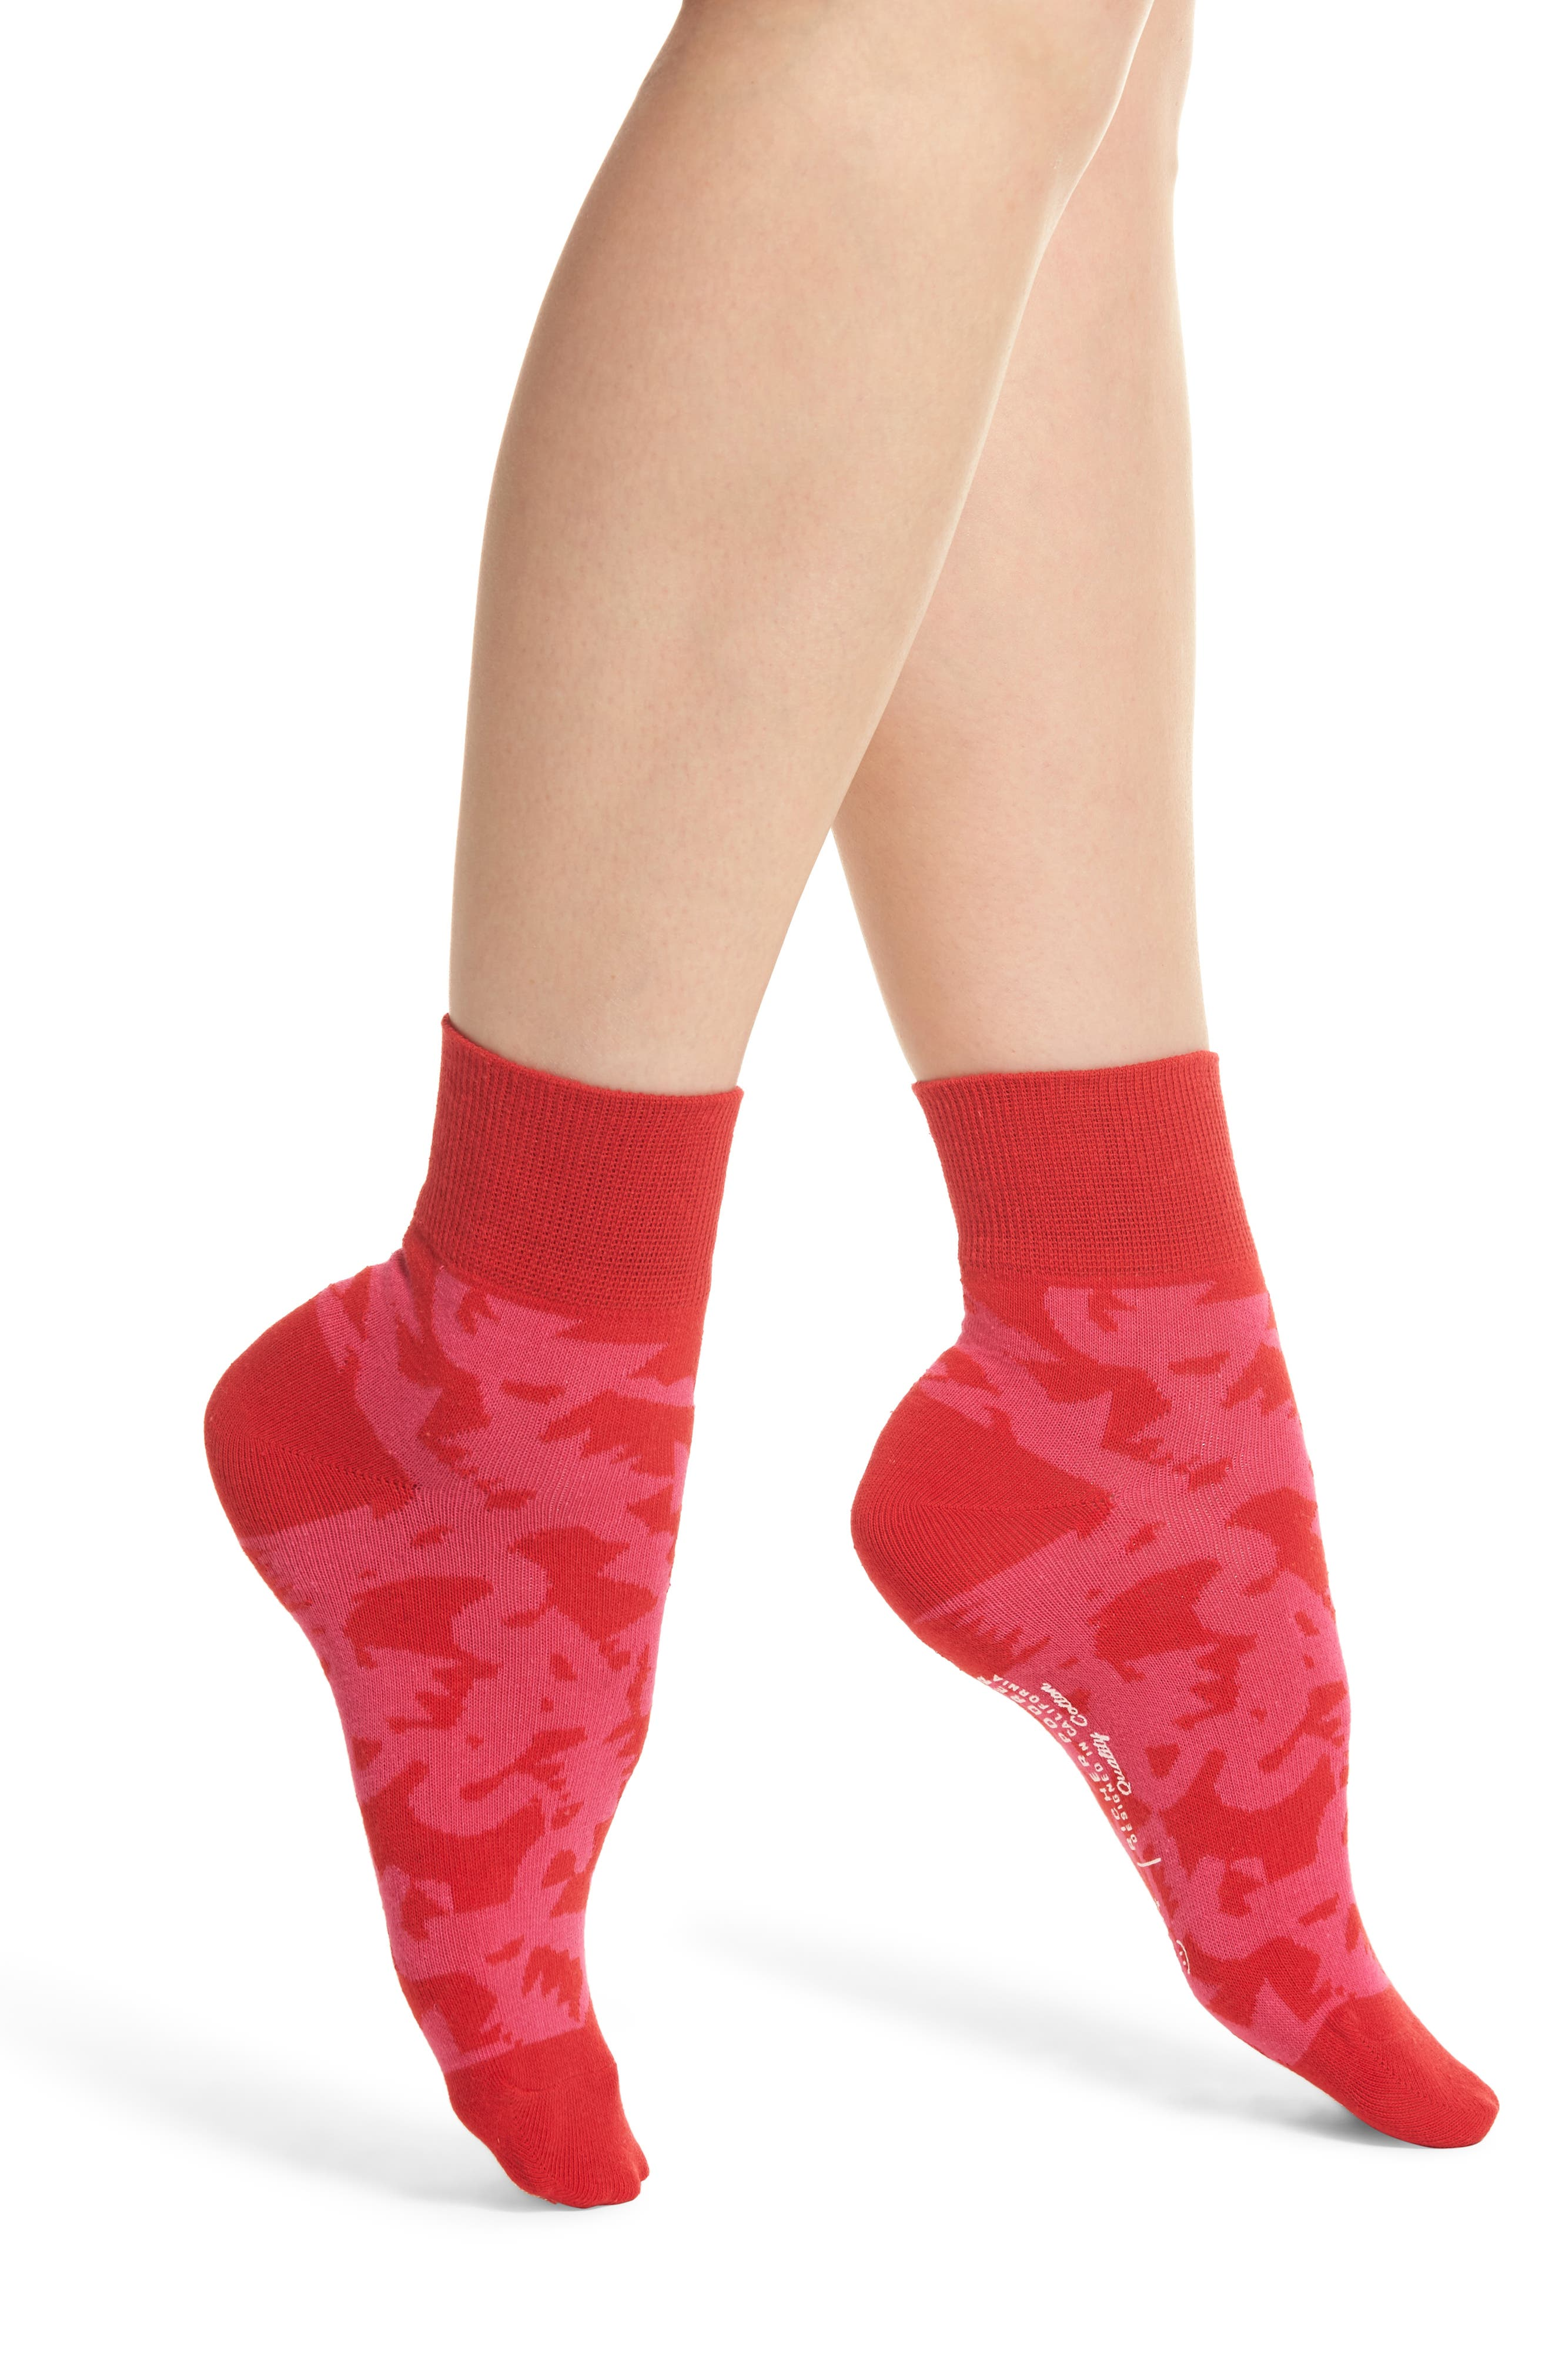 Abstract Will Bryant Socks,                             Main thumbnail 1, color,                             Red